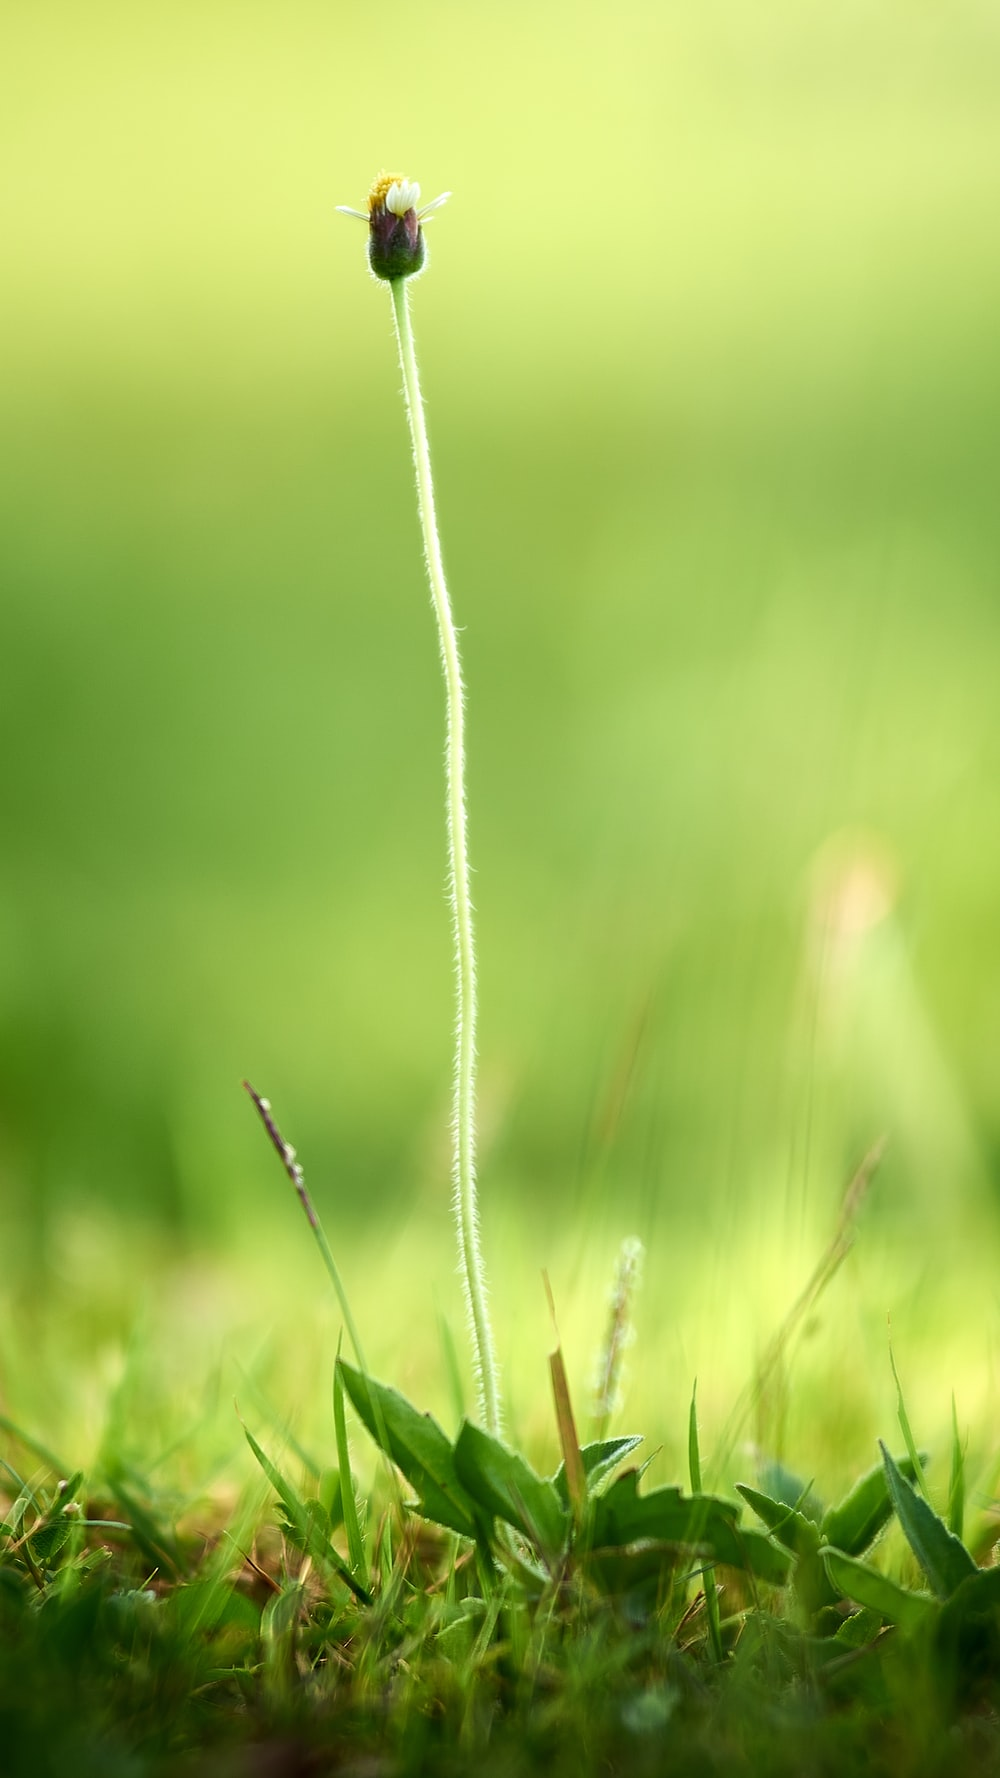 white rope on green grass during daytime